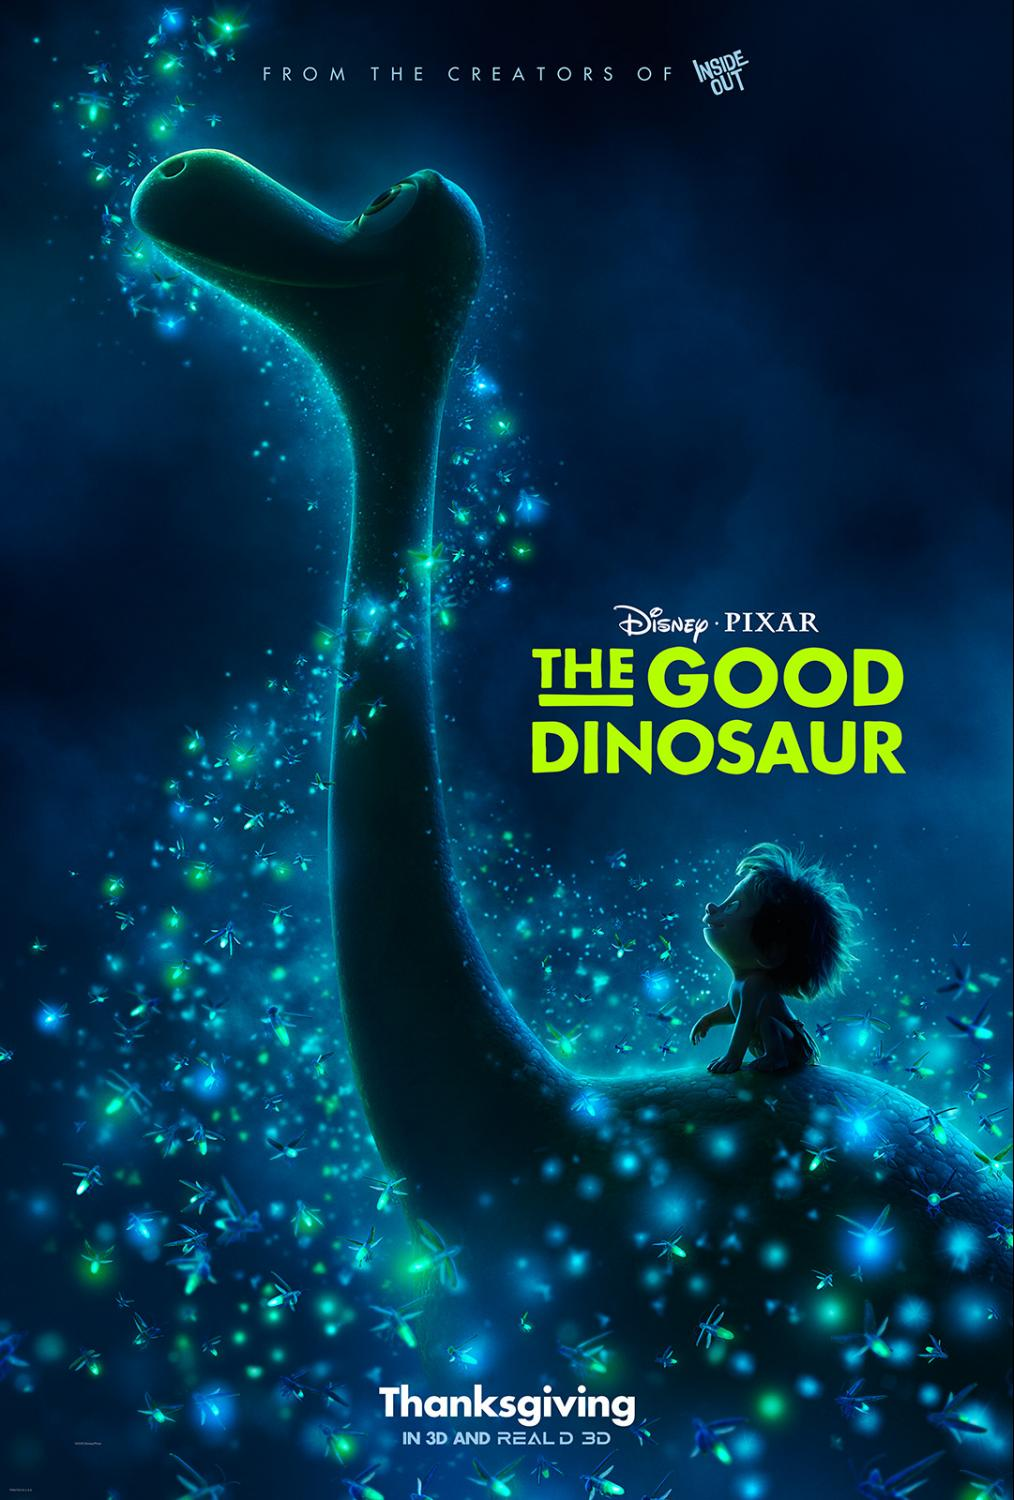 image from The Good Dinosaur